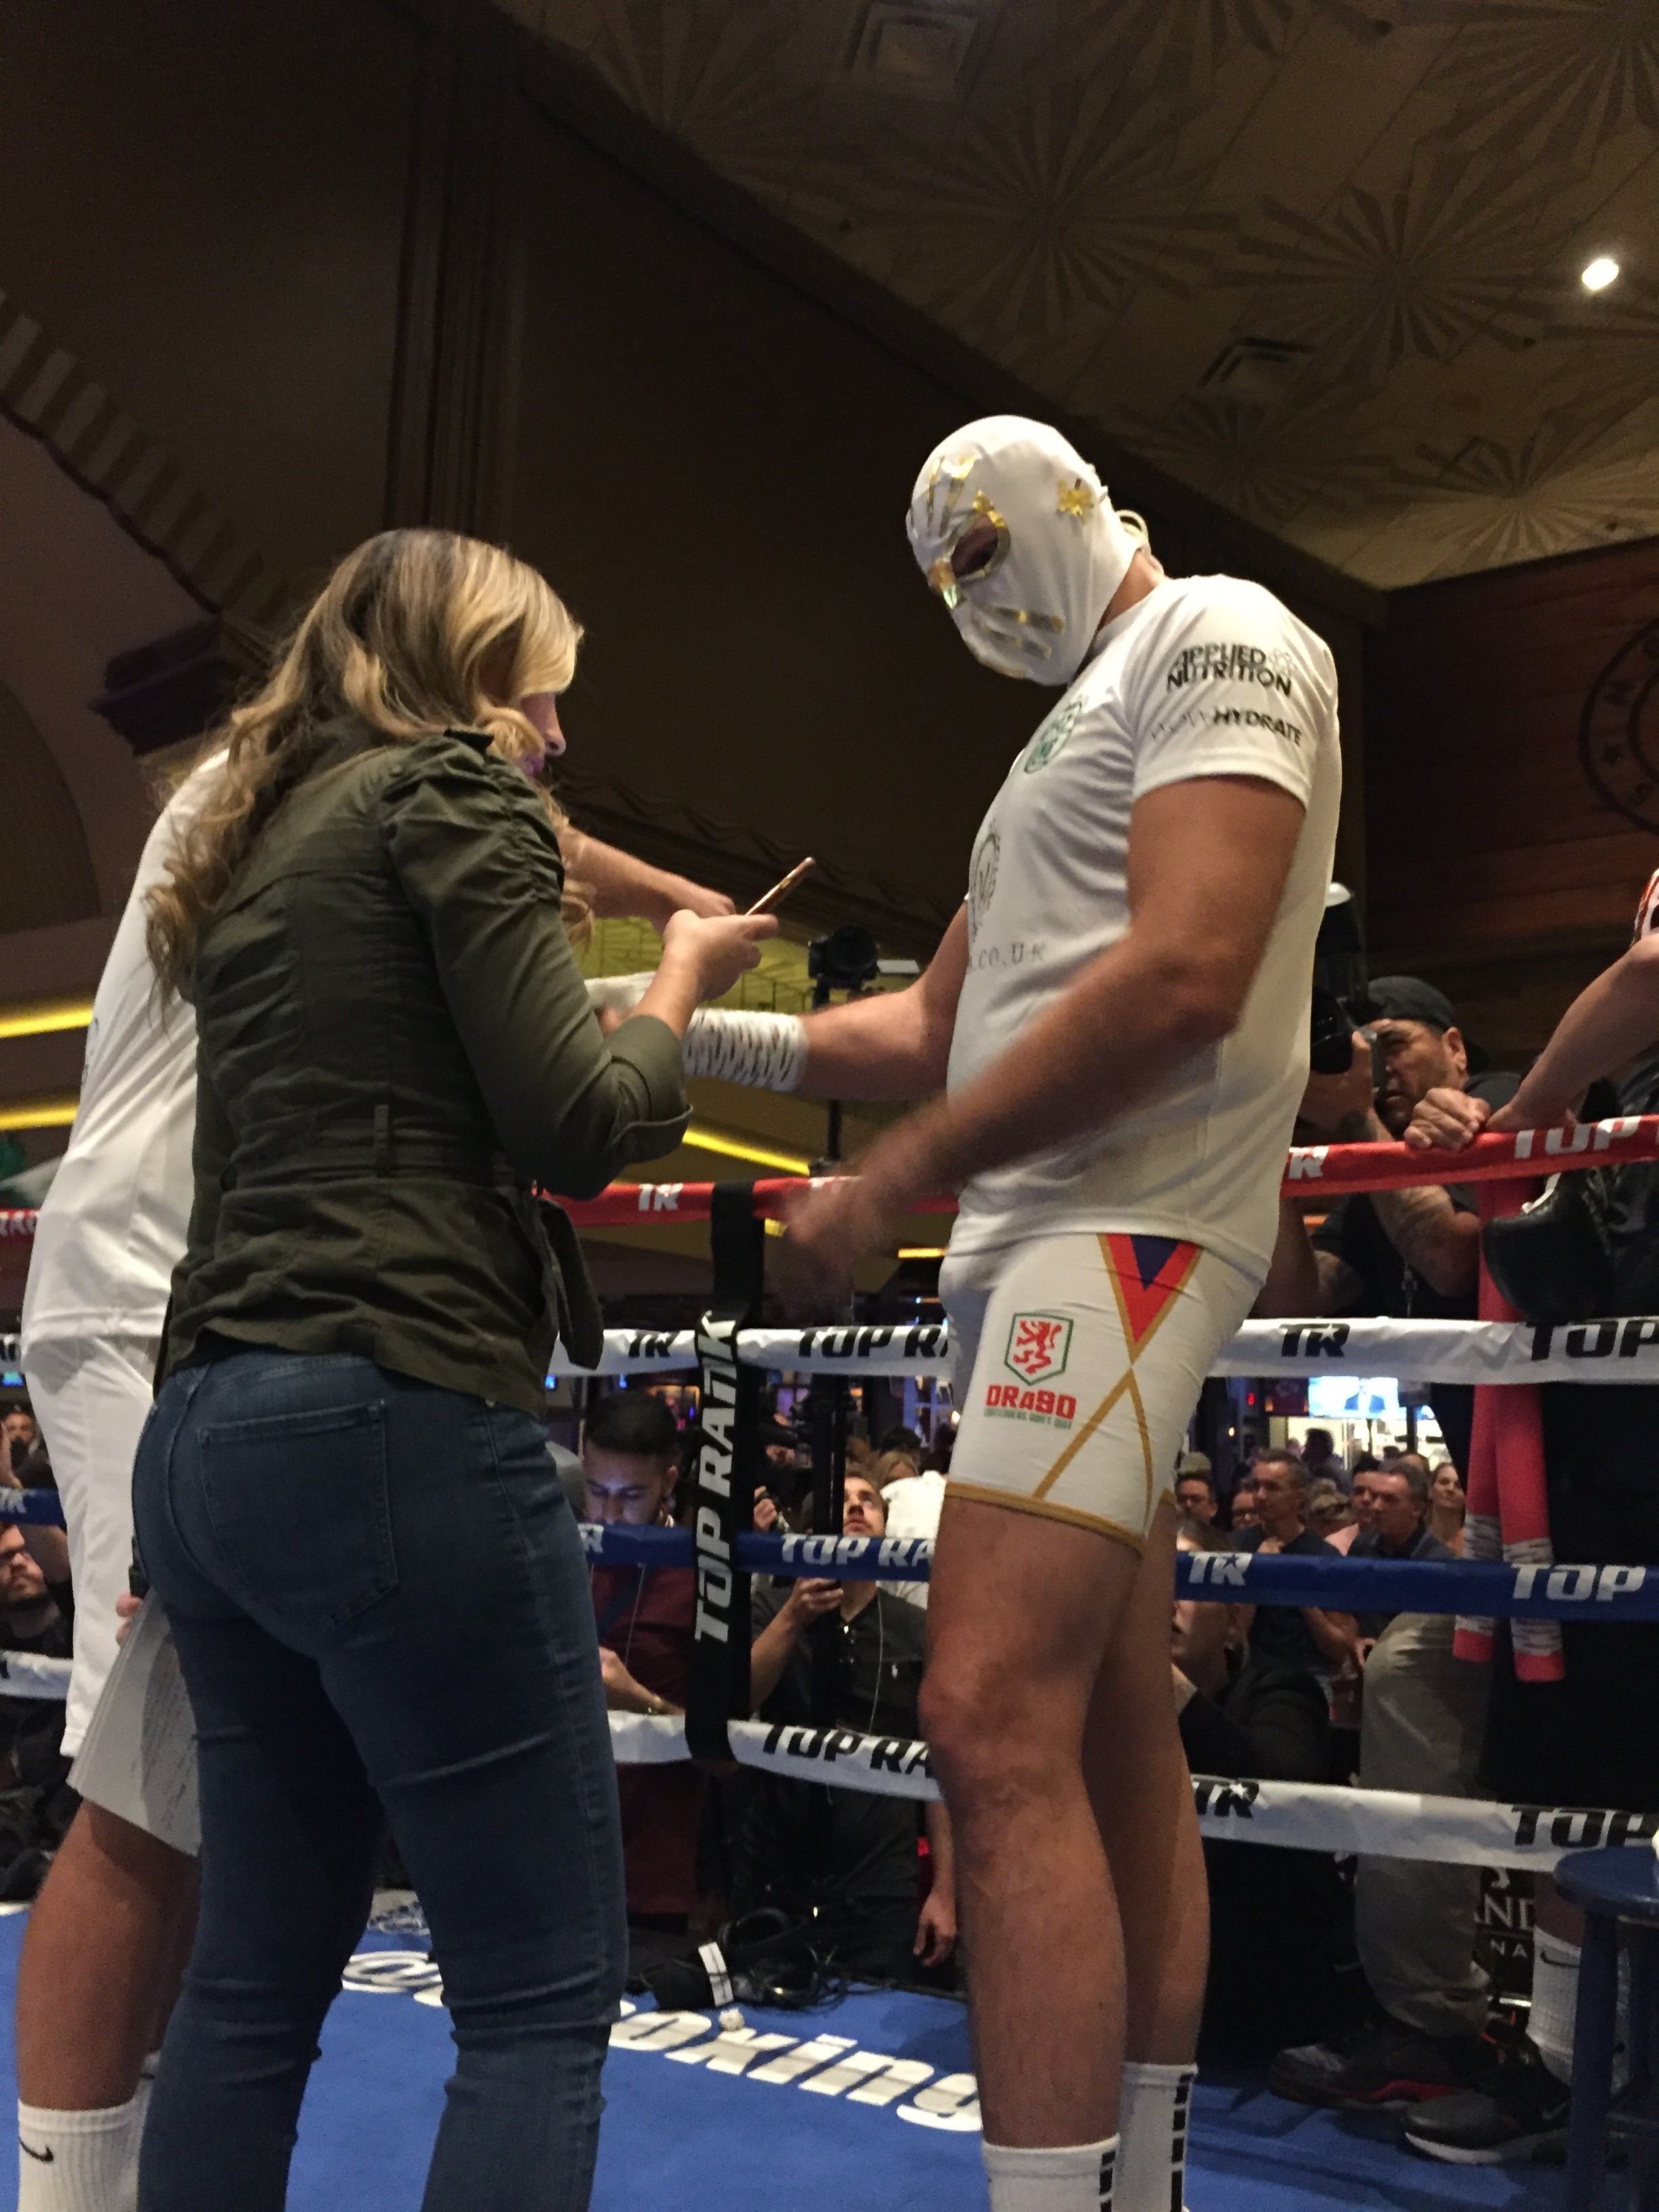 Tyson Fury in a Mexican wrestler's mask at his workout at the MGM Grand in Las Vegas ahead of a fight against Otto Wallin